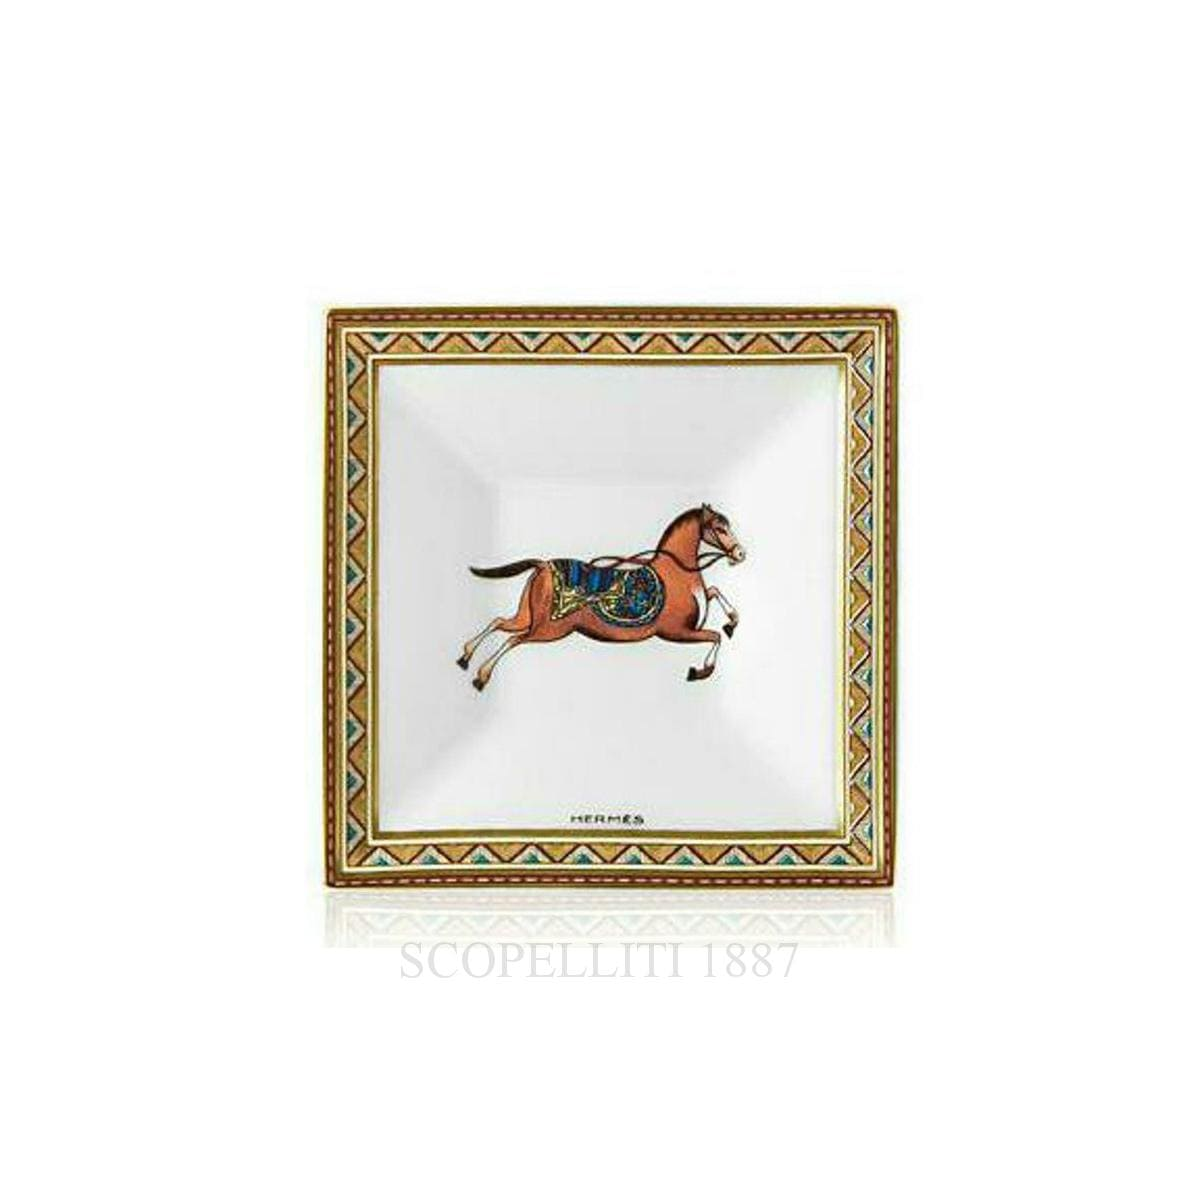 Hermes Cheval d'Orient Square Plate n°1